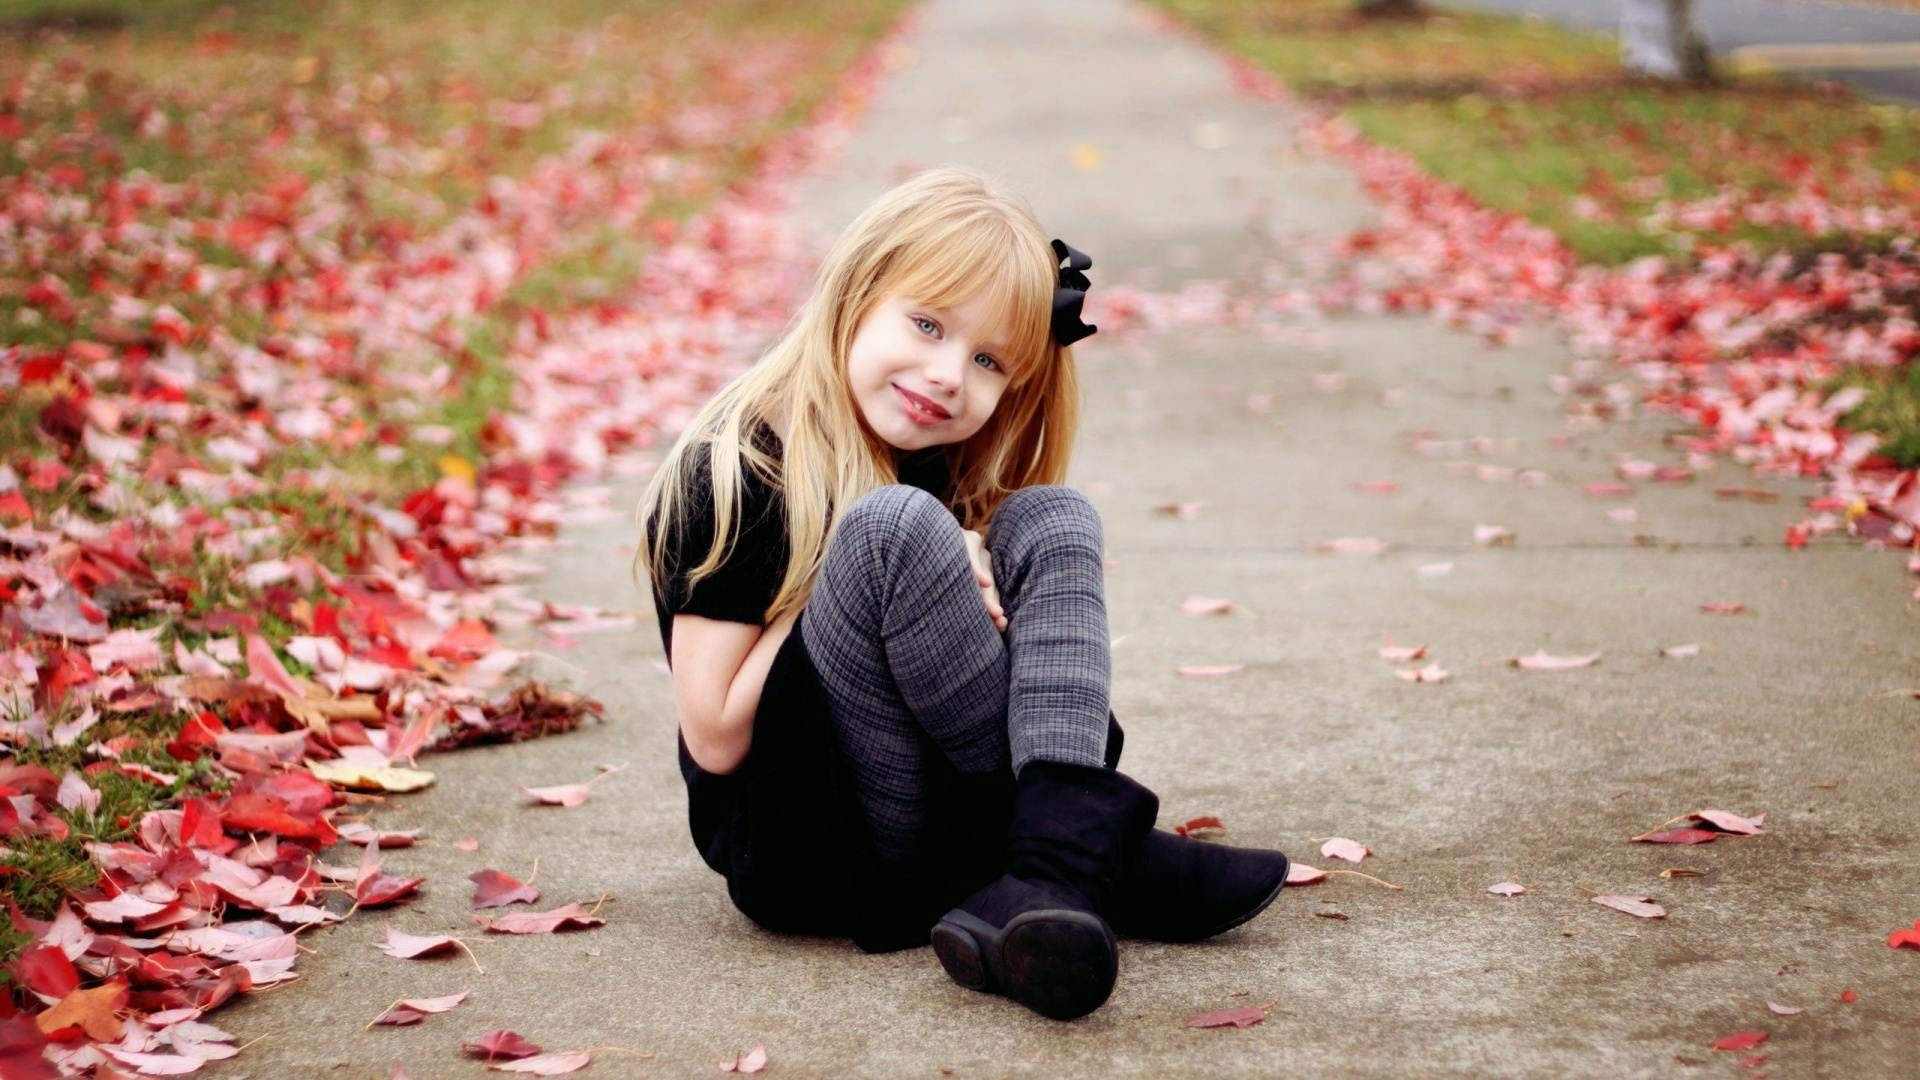 Cute Baby Child Girls Wallpapers   New HD Wallpapers 1920x1080